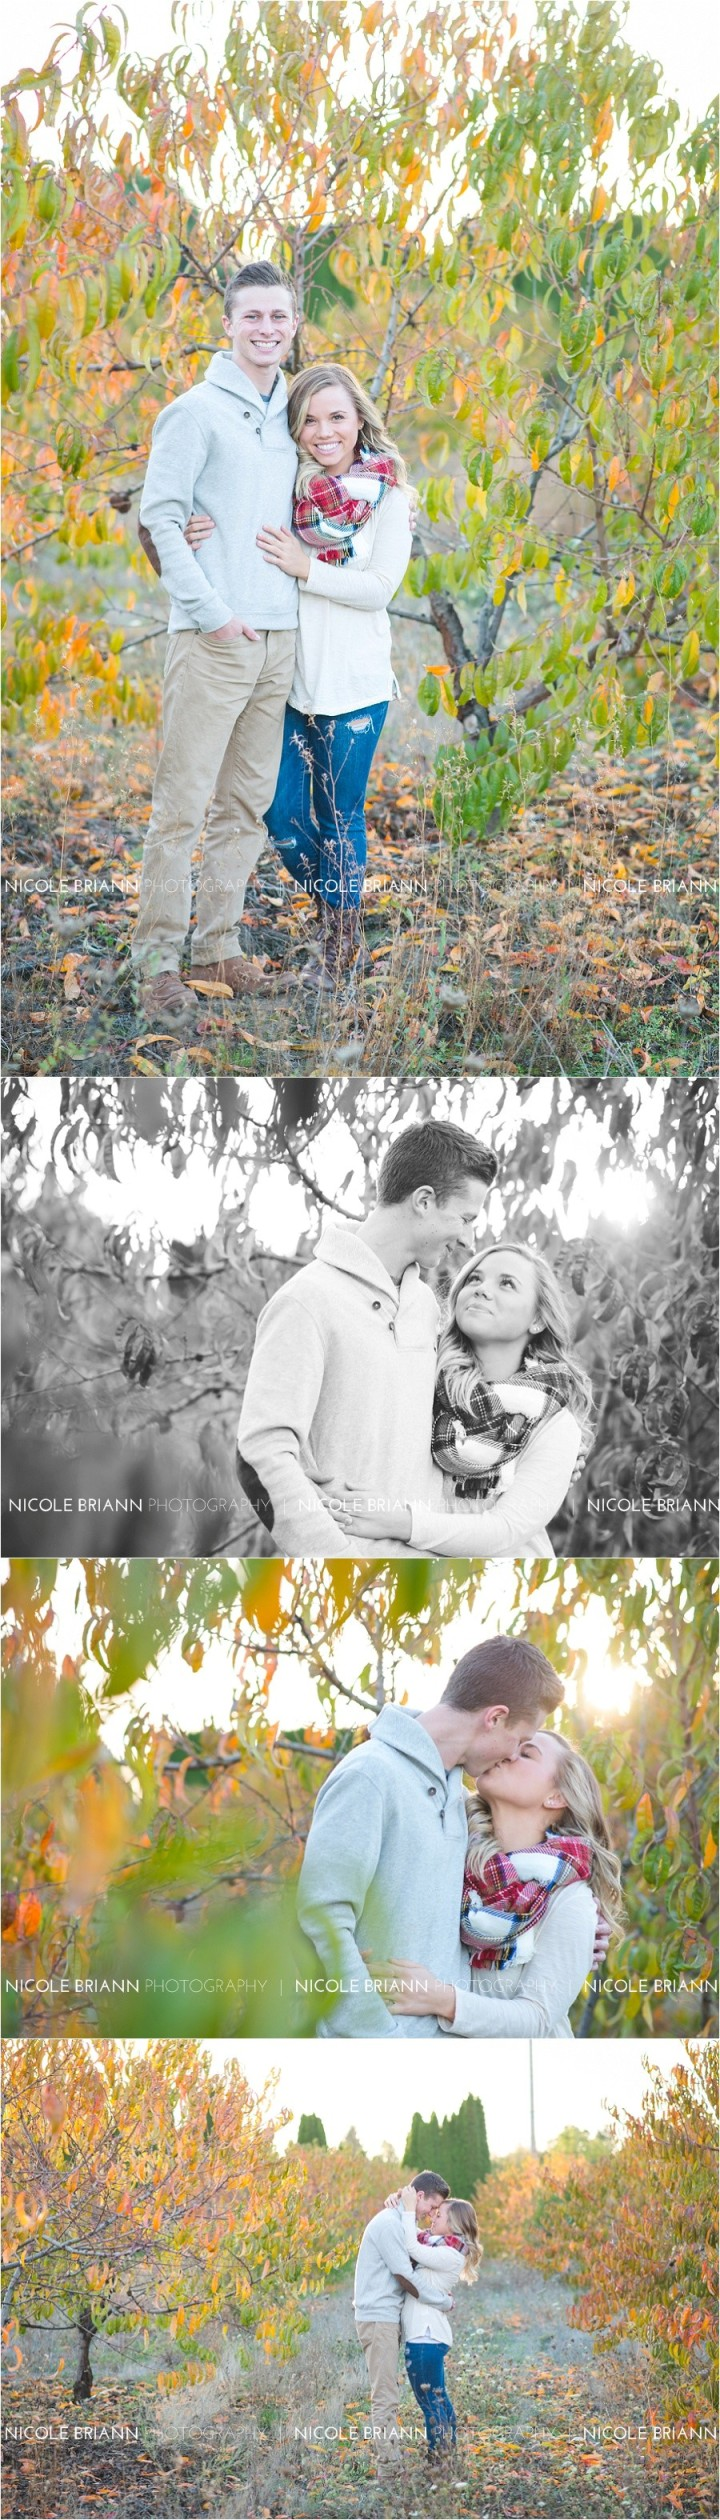 oregon-wedding-photographer-nicole-briann-photography-taylor-and-cory_0006